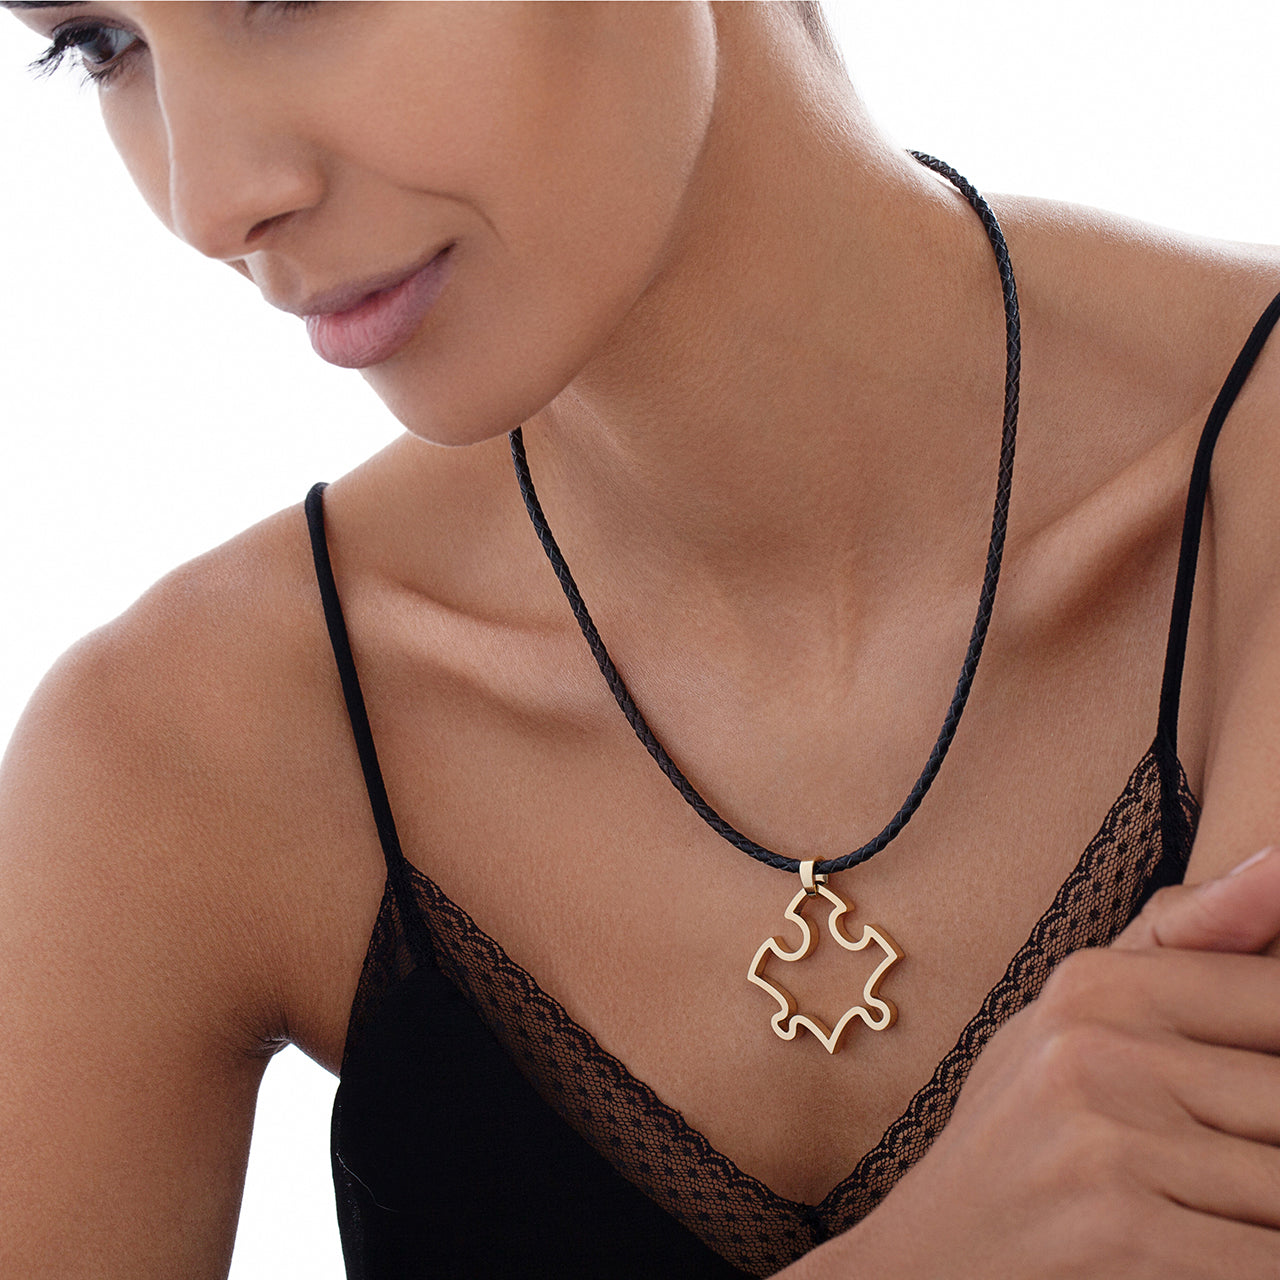 Puzzle Pendant on Model